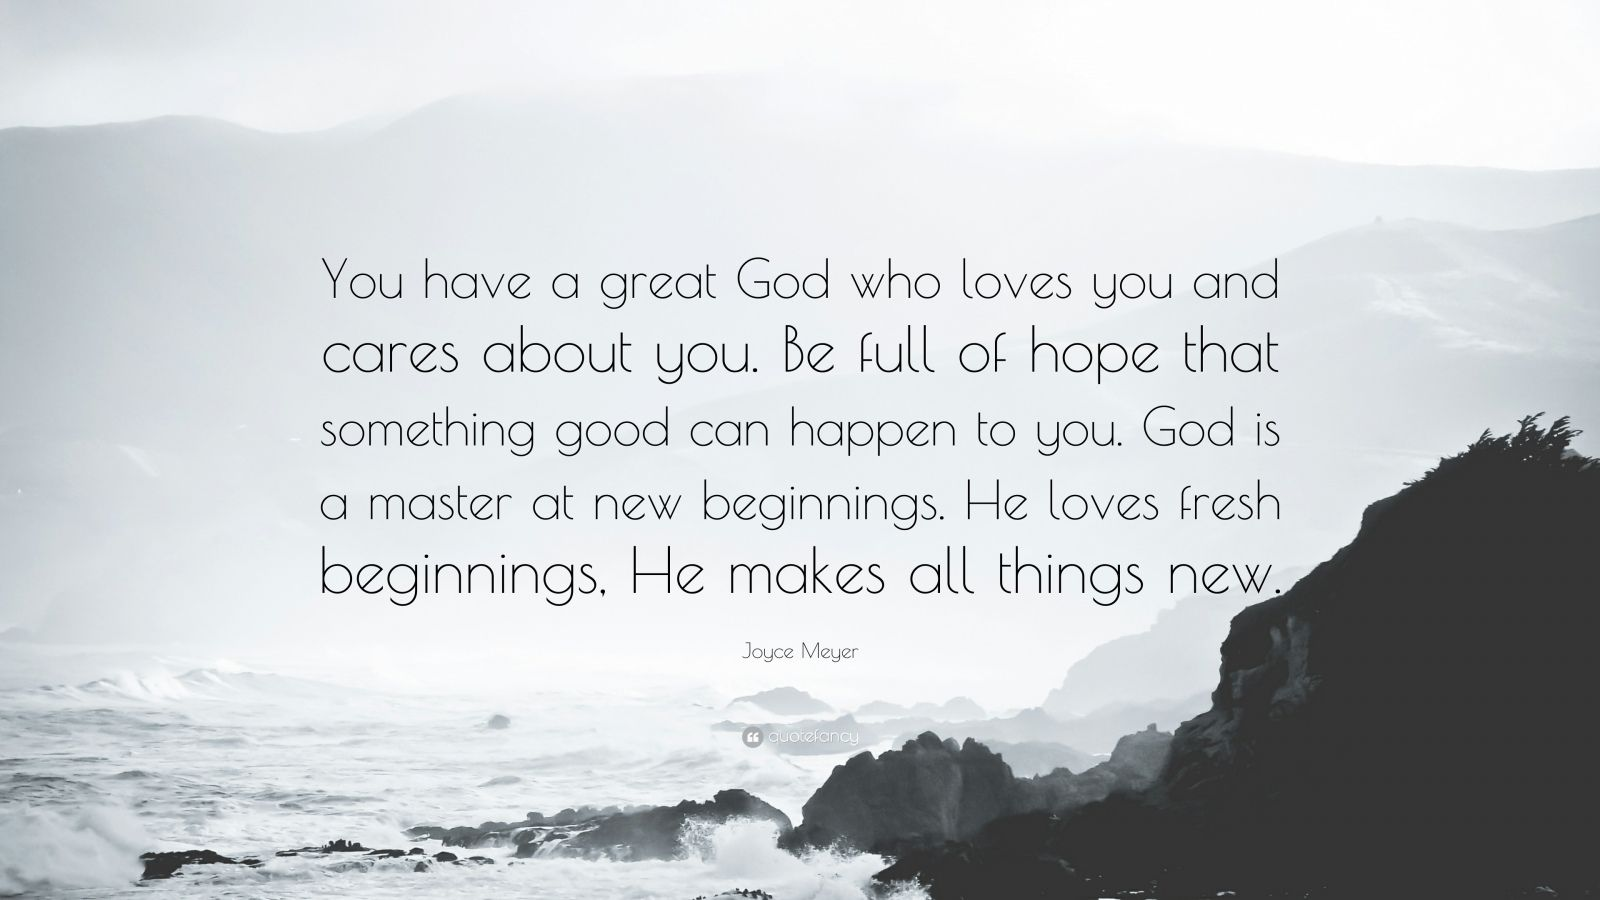 "Joyce Meyer Quote: ""You have a great God who loves you and cares about you. Be full of hope that something good can happen to you. God is a master at new beginnings. He loves fresh beginnings, He makes all things new."""